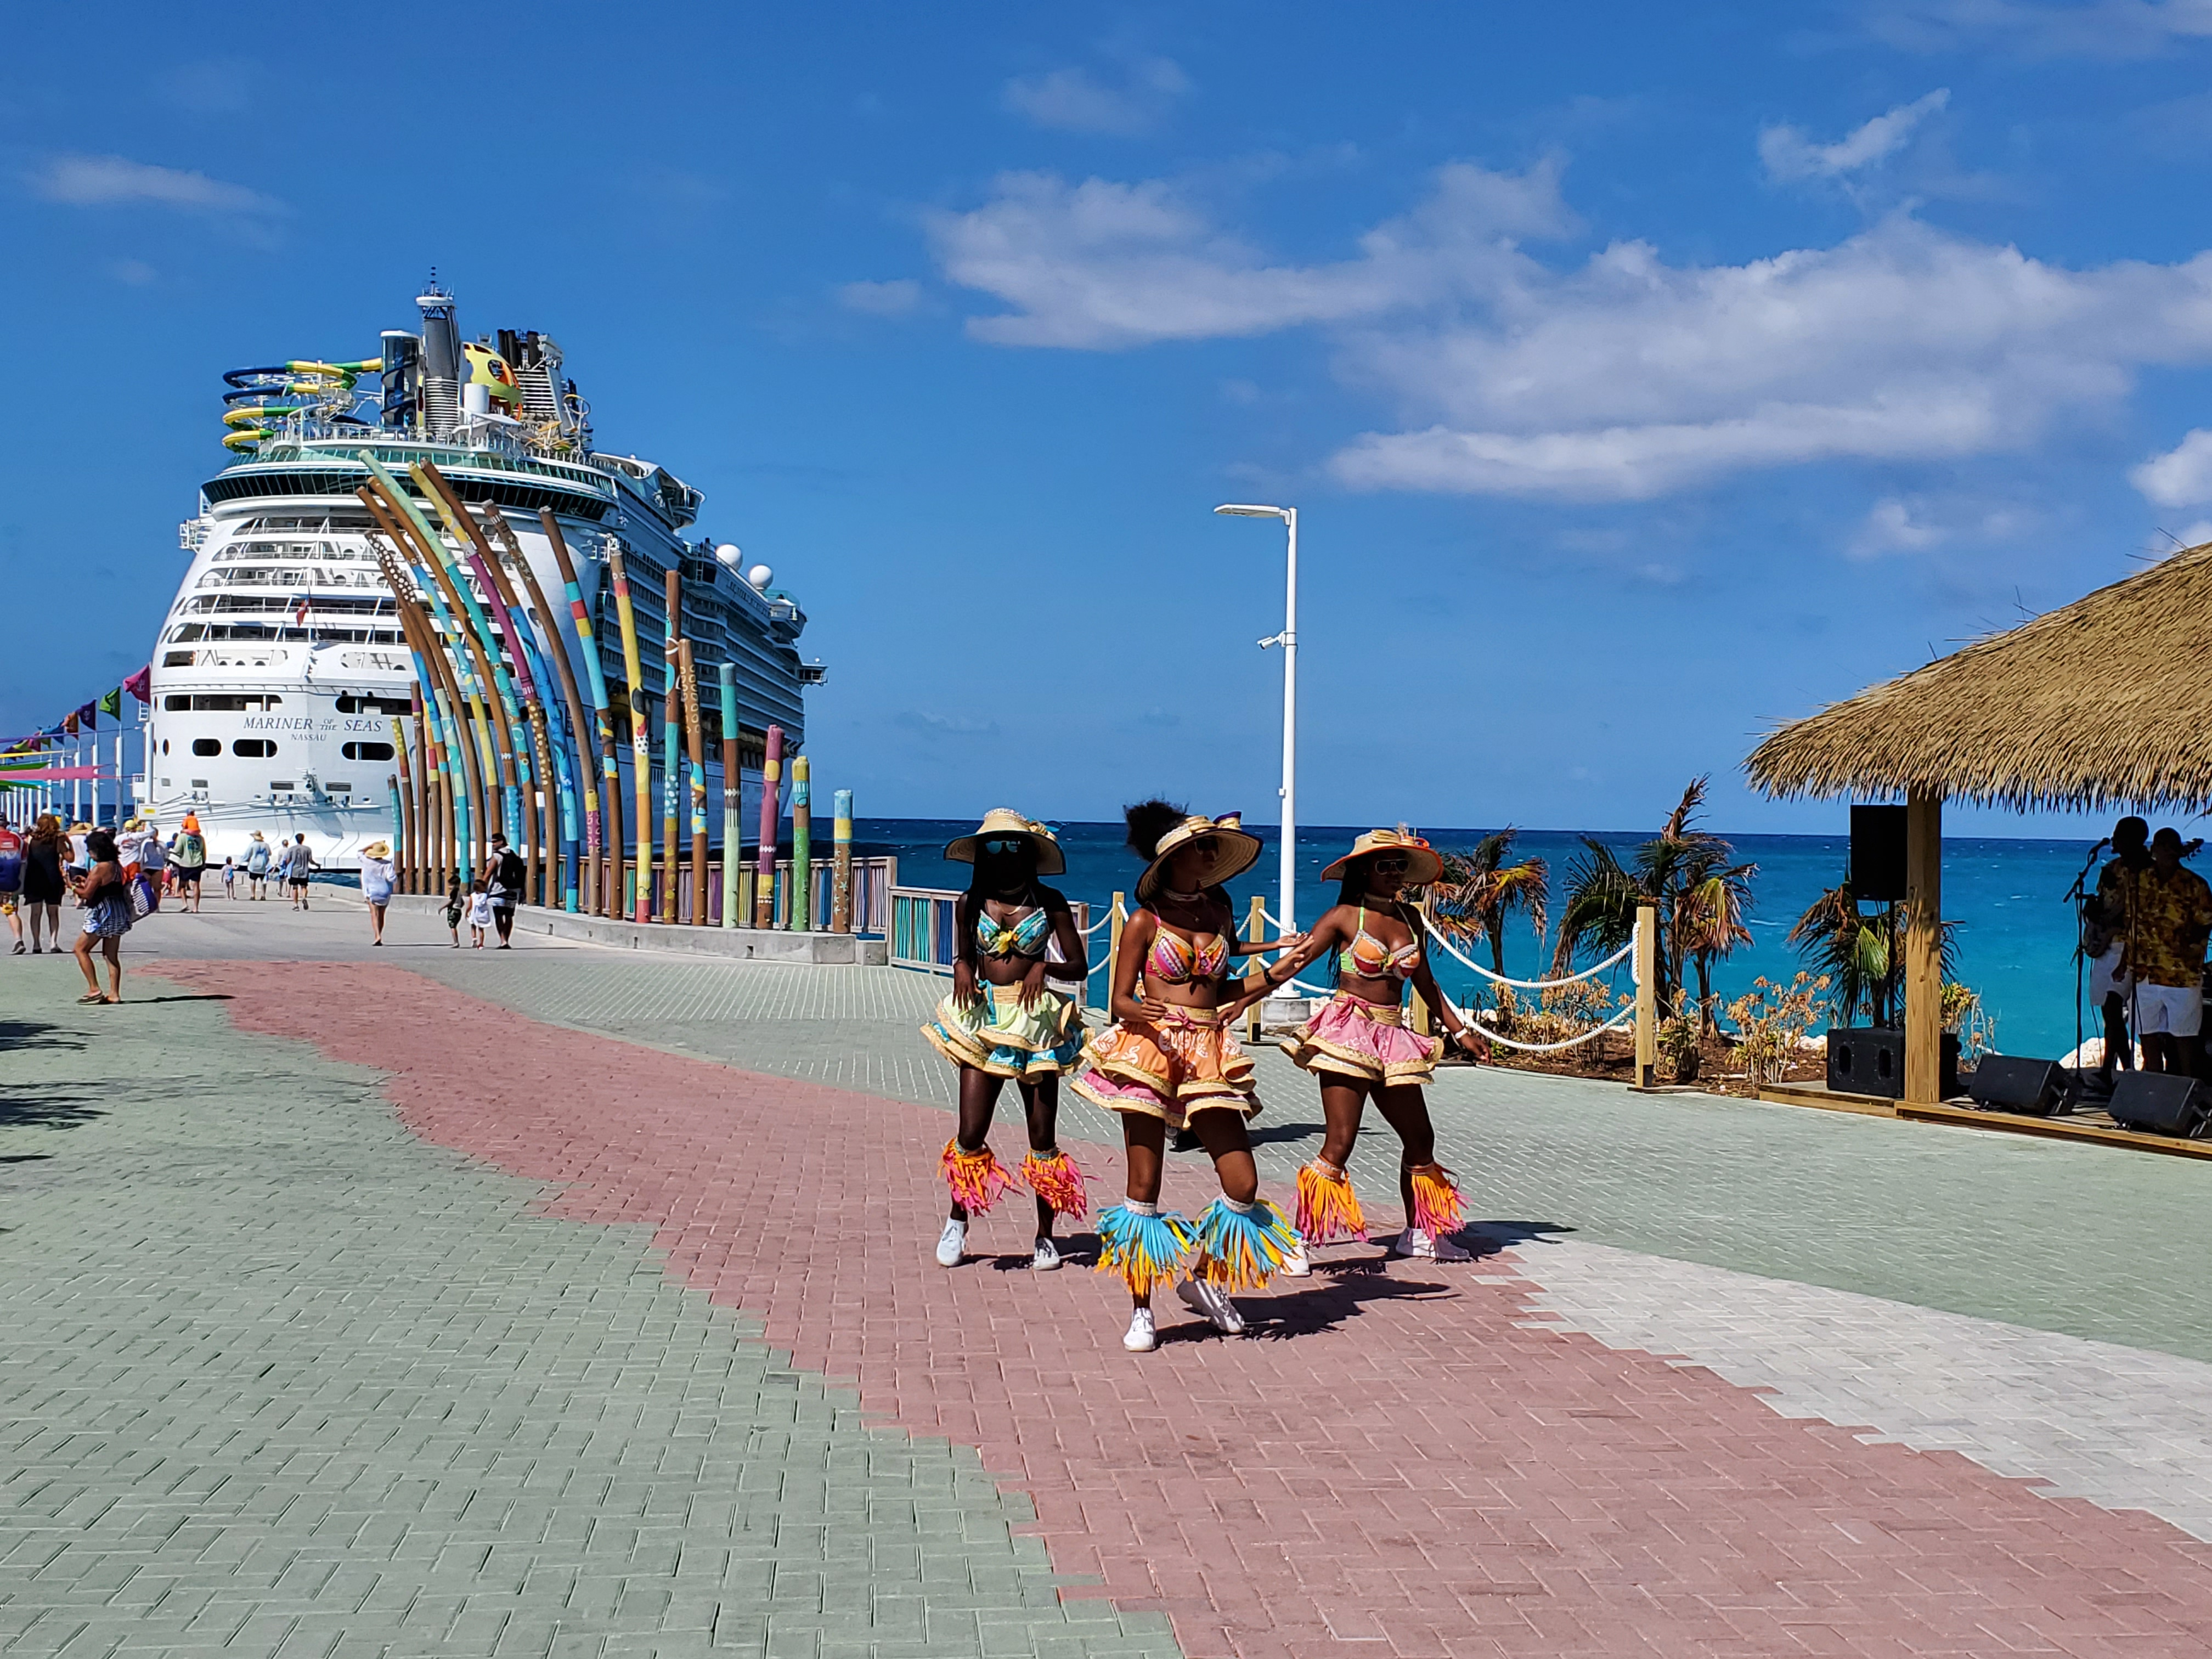 New Pier at CocoCay